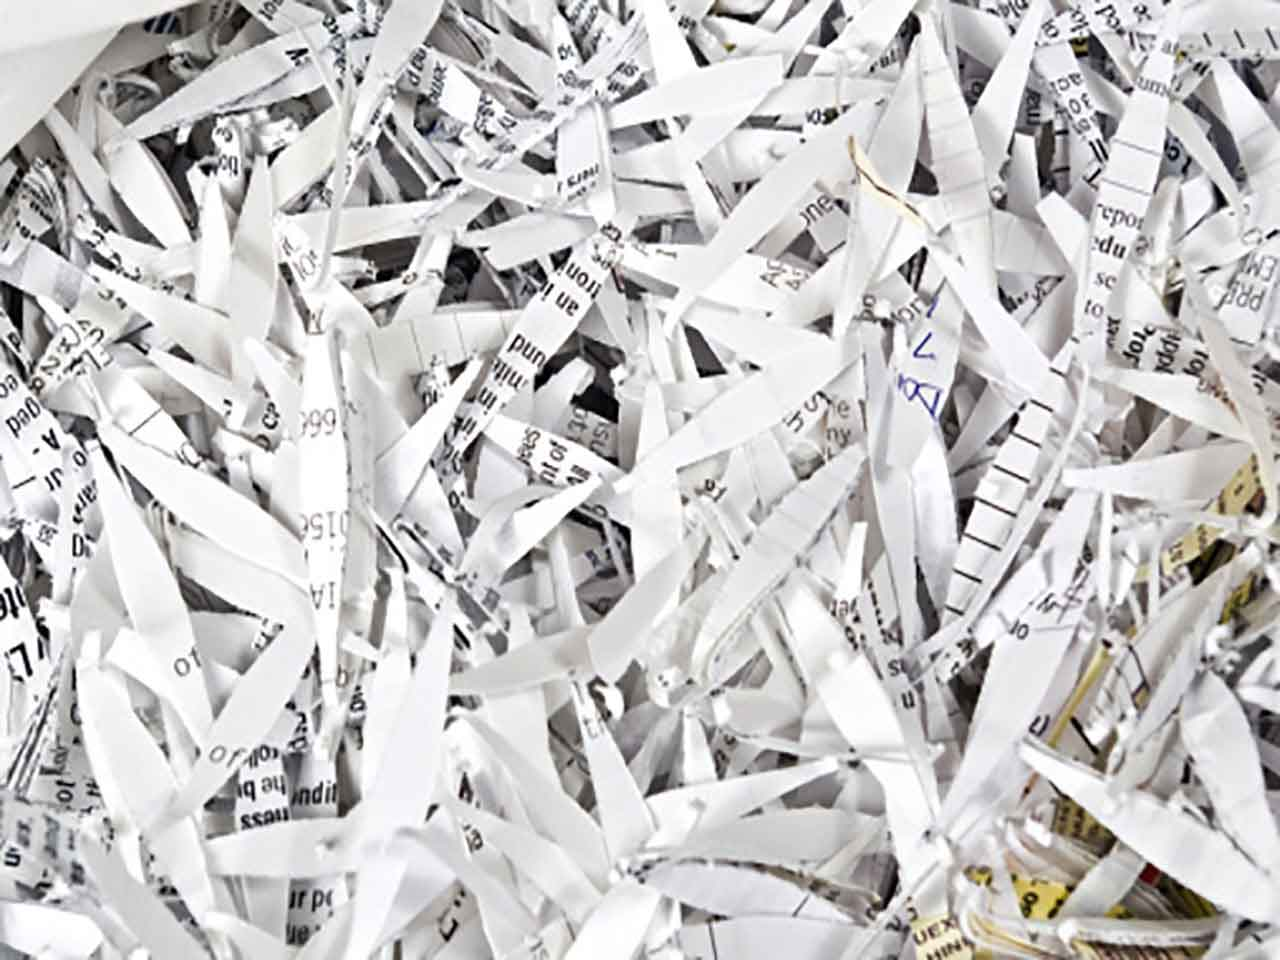 Shredded bank statements and personal documents